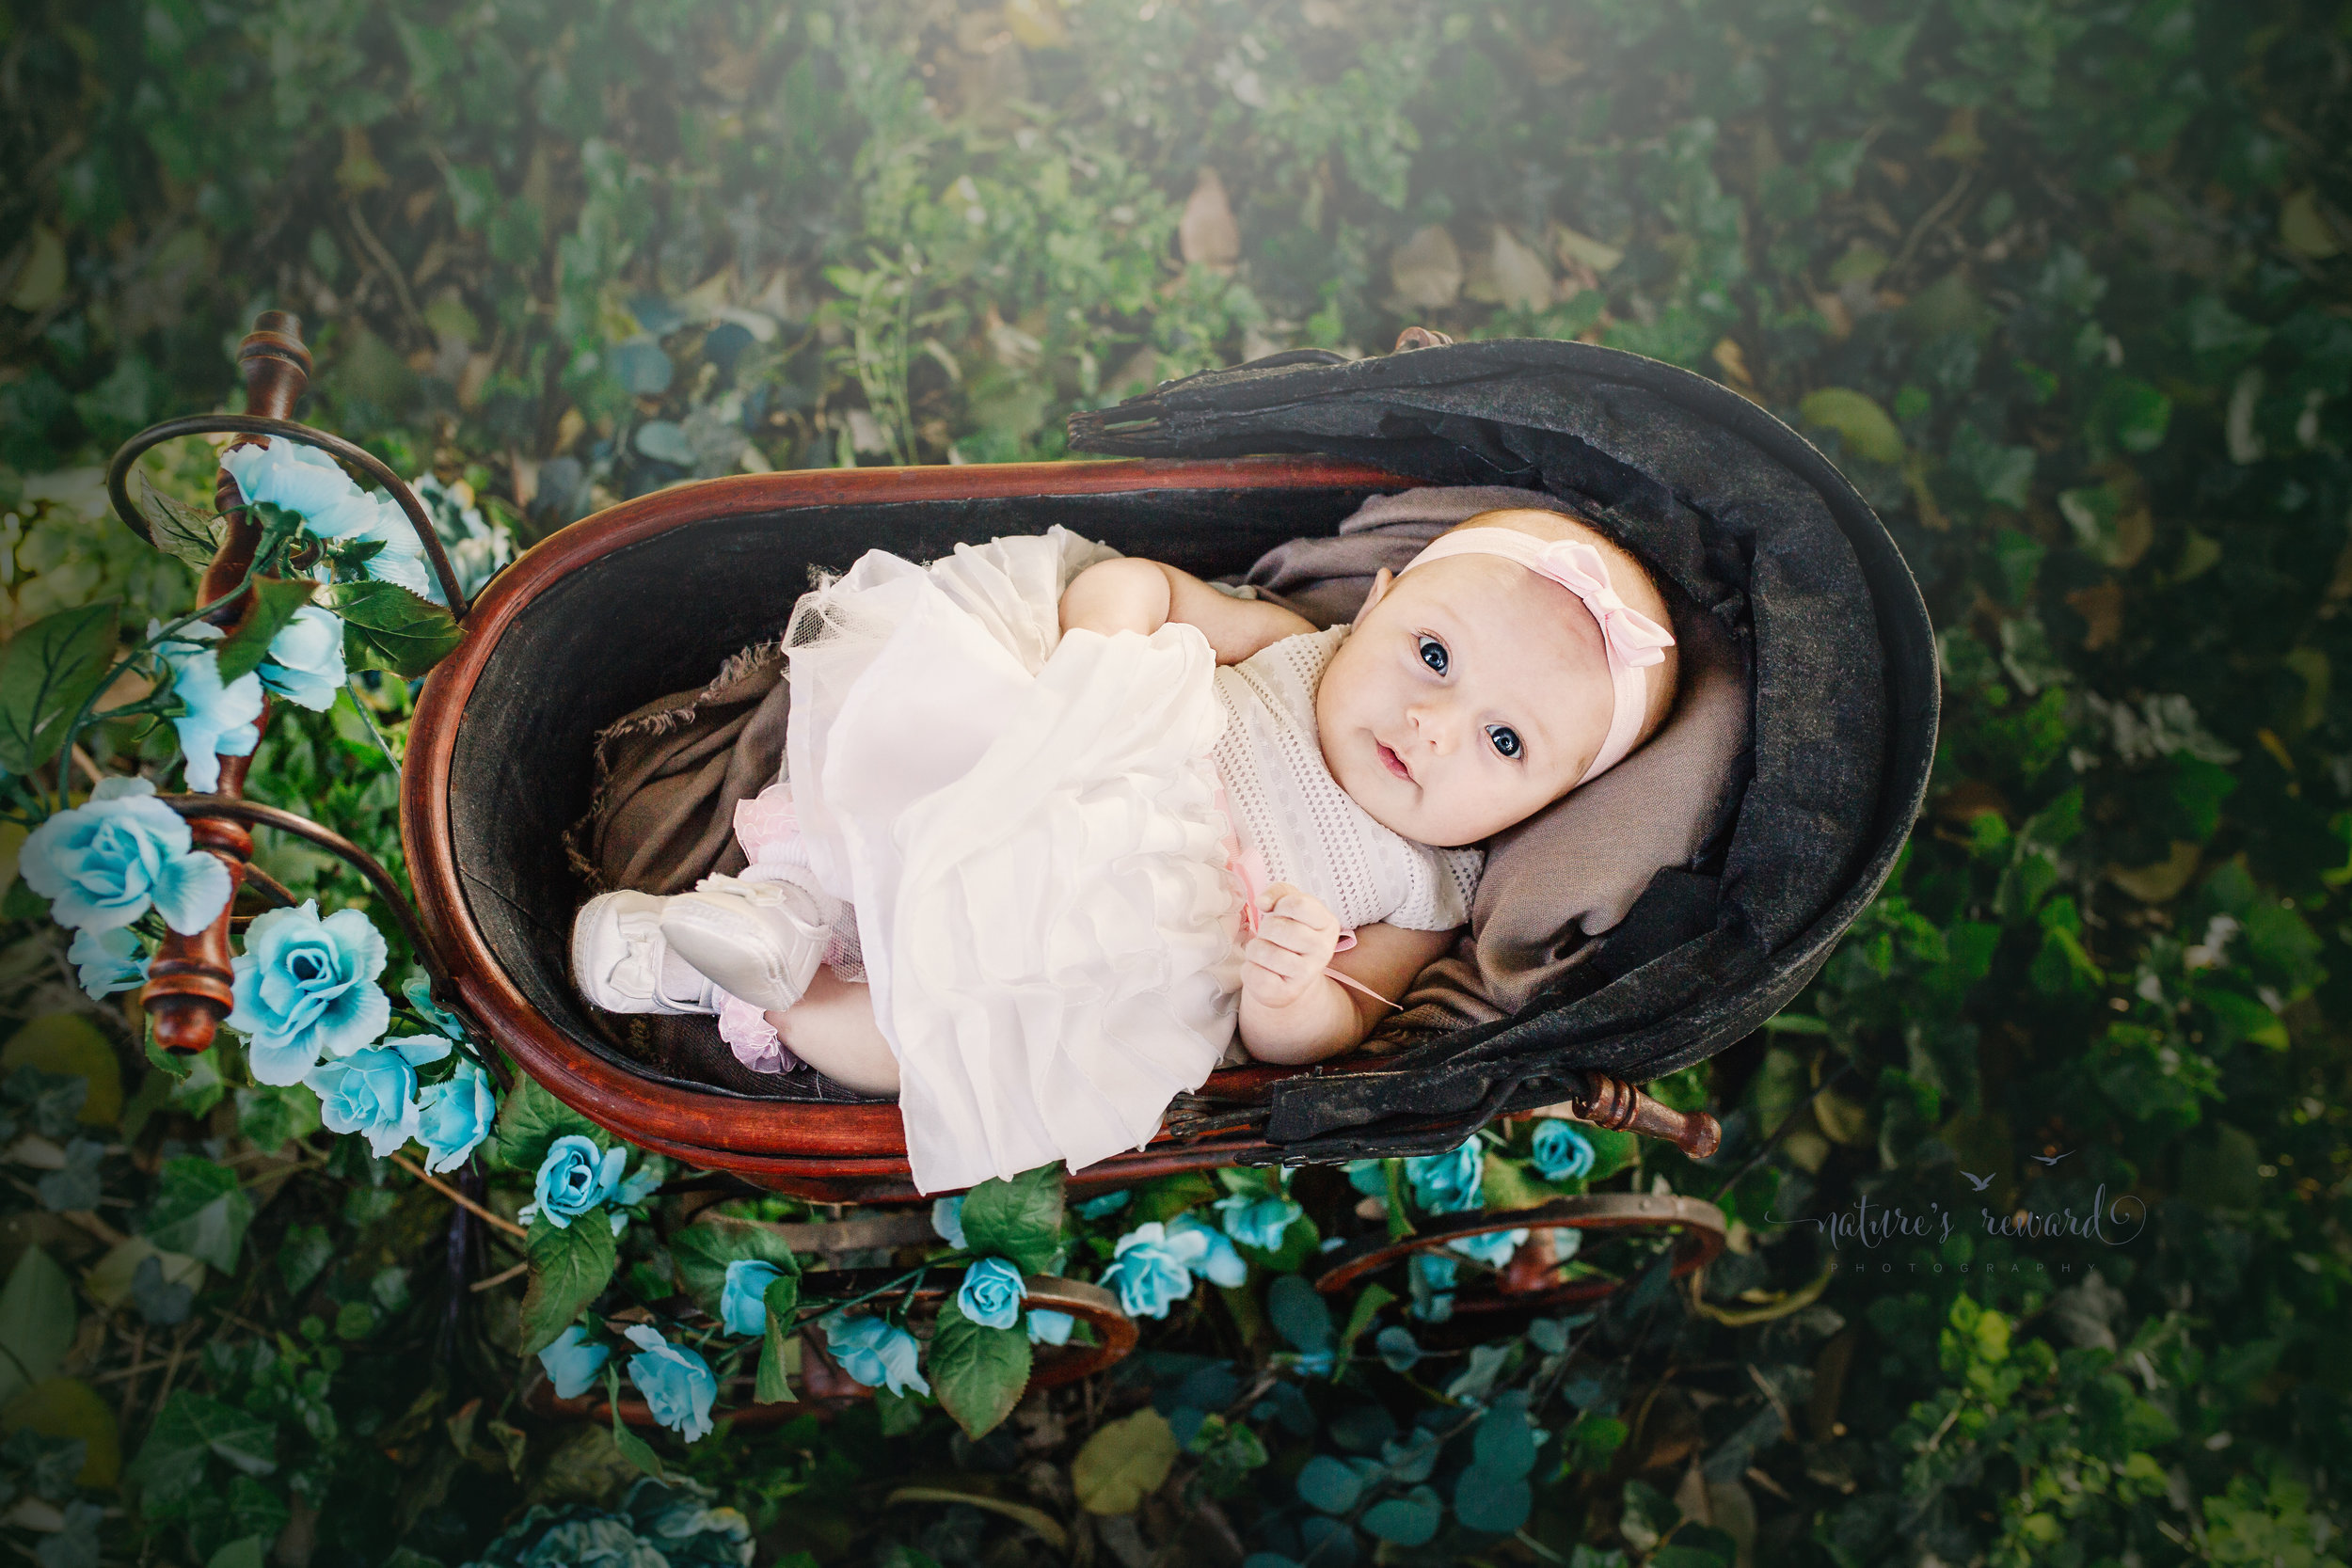 Three (3) month old baby girl in a white dress and pink hair band lays dreamingly in an antique doll carriage in the beautiful setting sunlight in park setting in this portrait by Nature's Reward Photography.